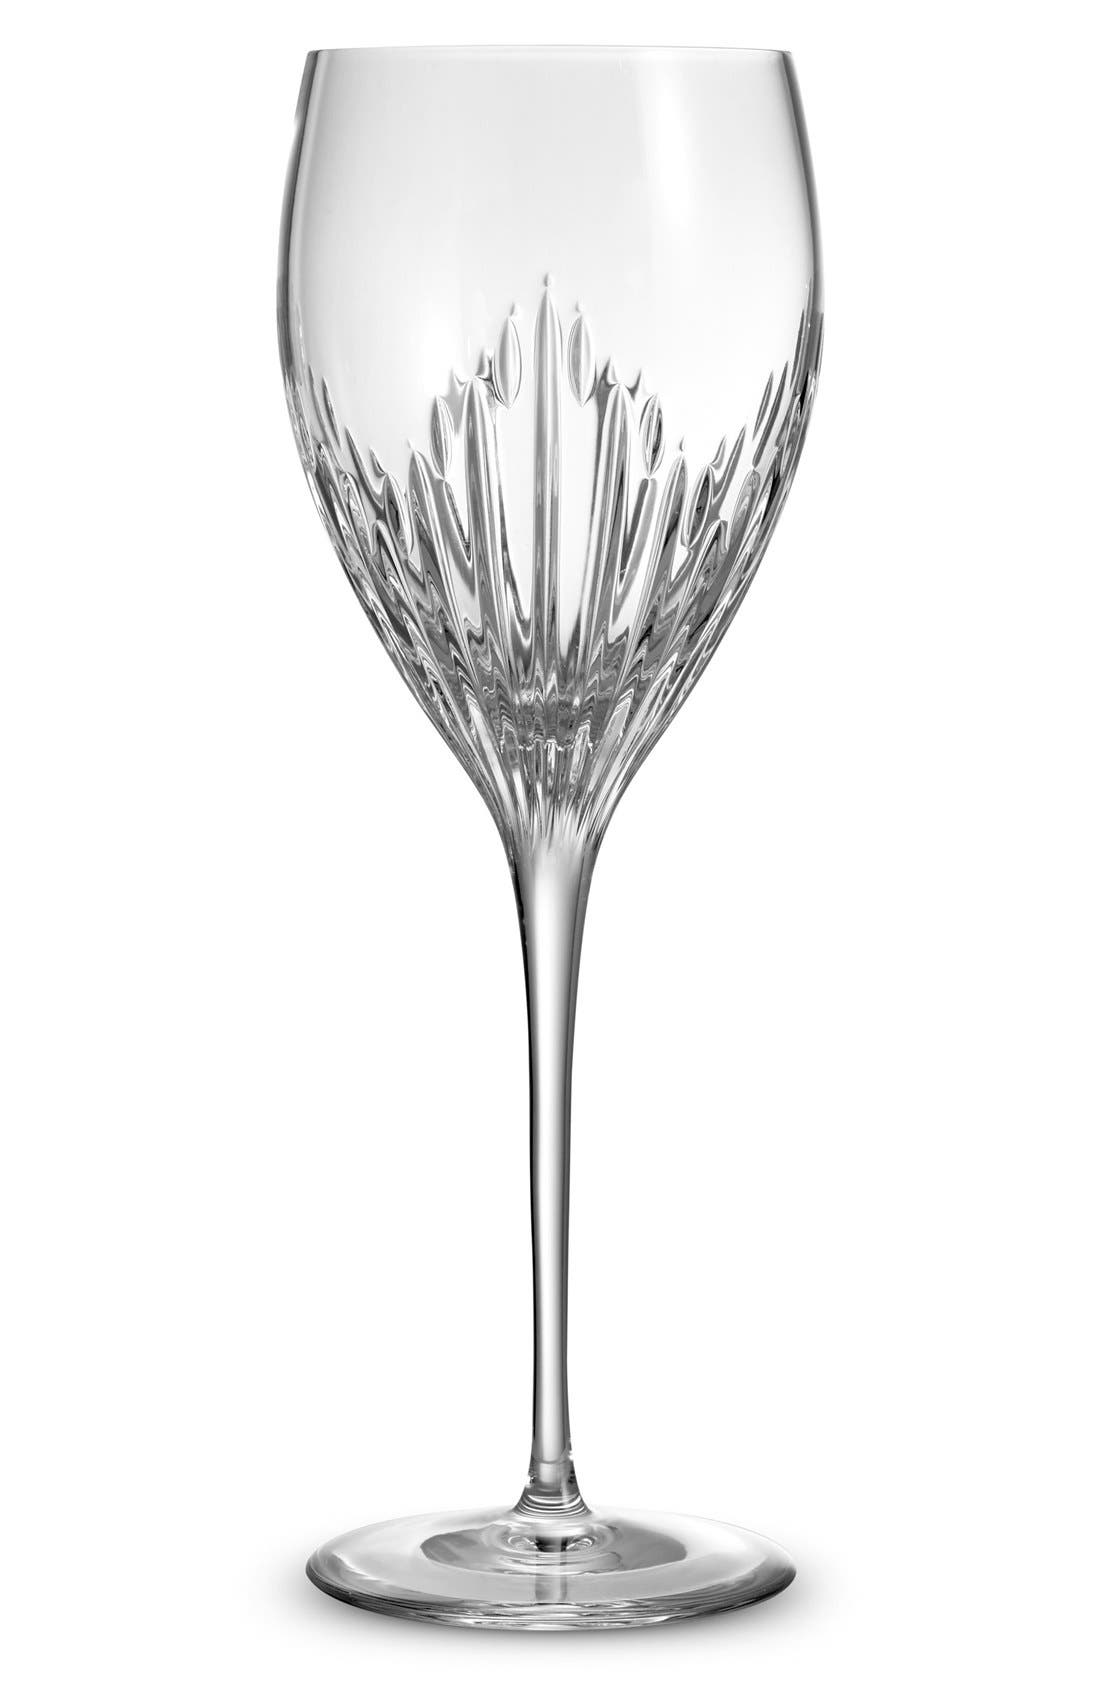 Monique Lhuillier Waterford 'Stardust' Lead Crystal Wine Glass,                             Main thumbnail 1, color,                             Clear